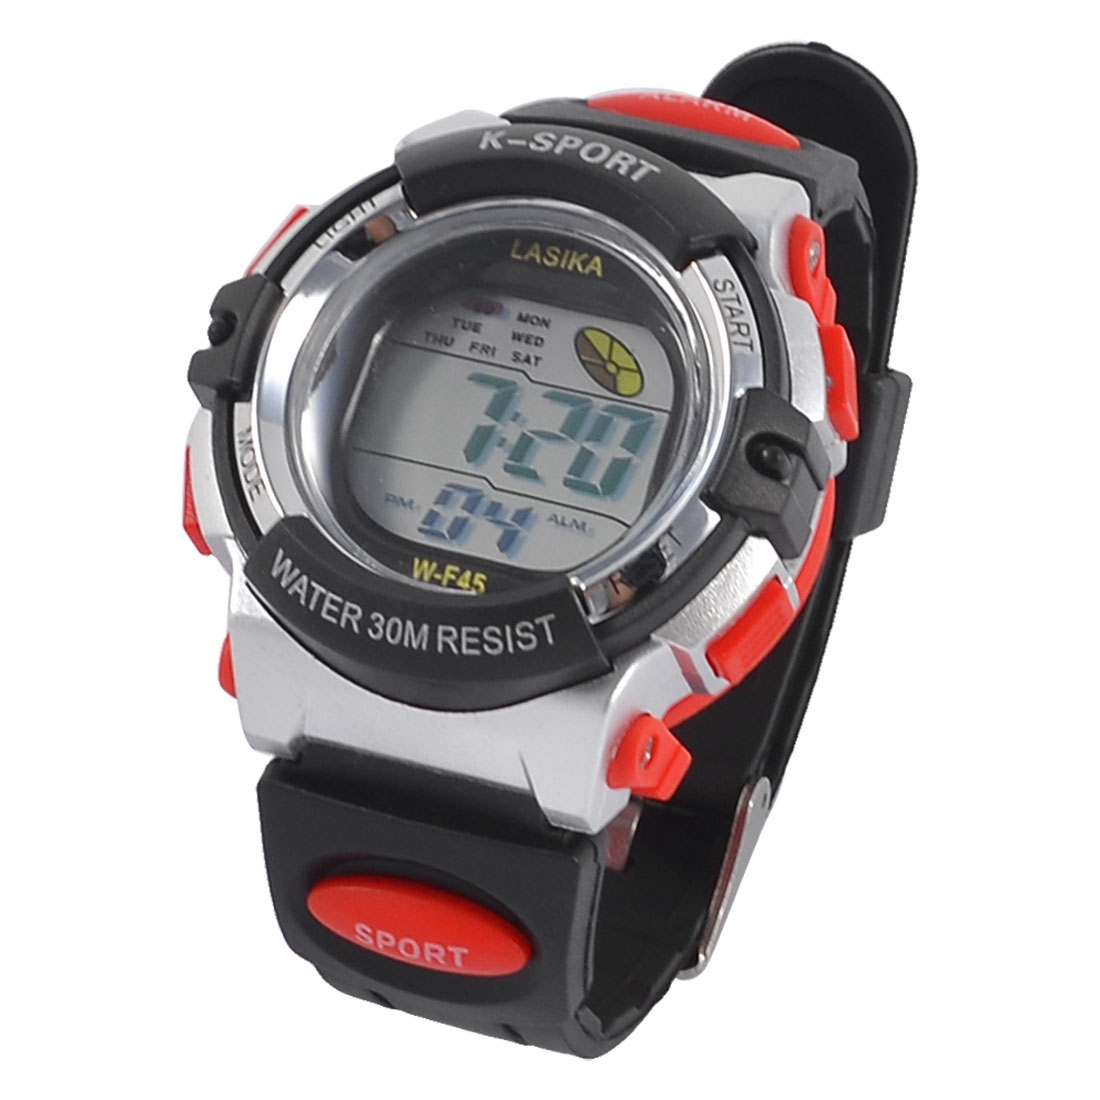 Soft Plastic LCD Digital Display Sport Wrist Watch Red Black for Child